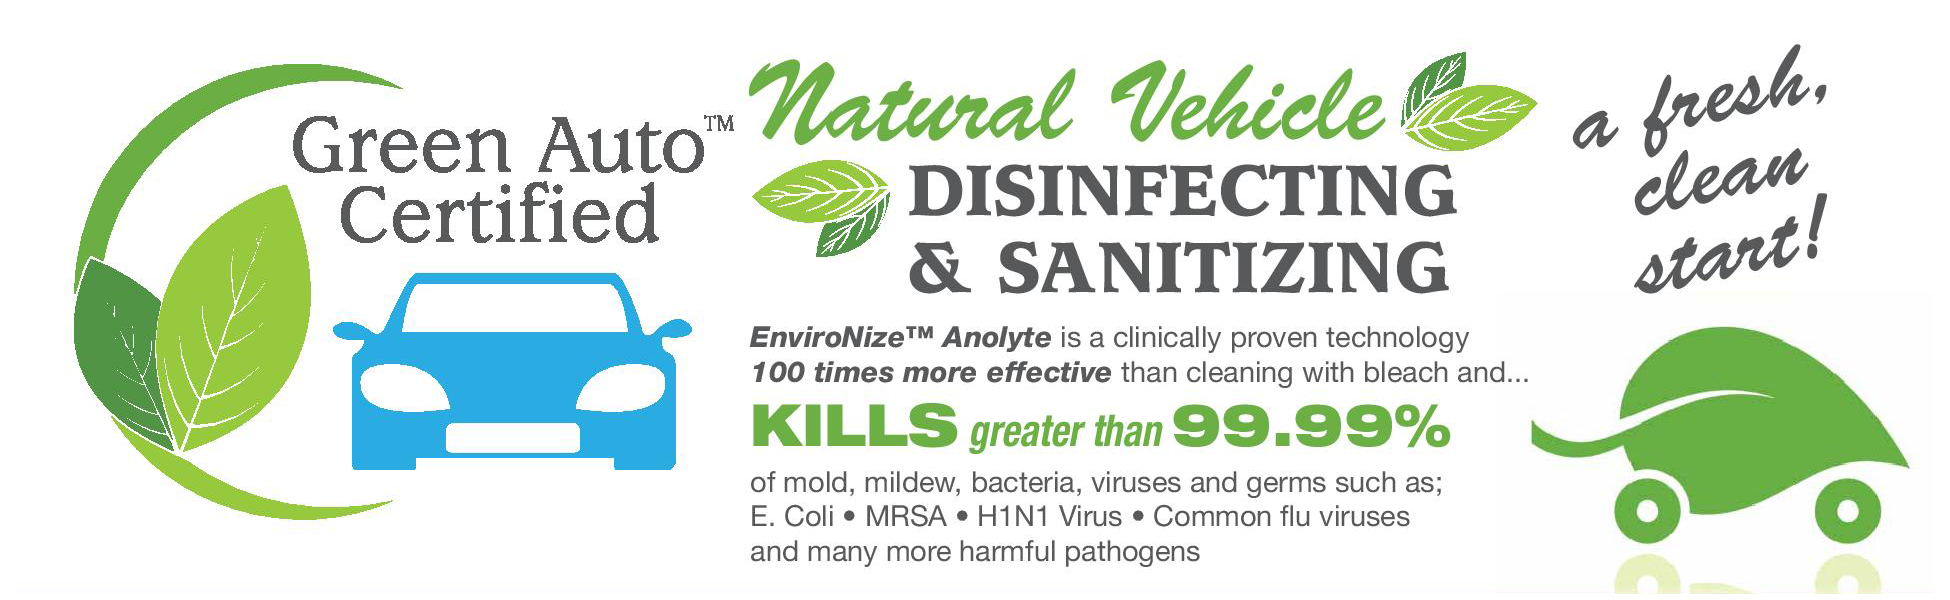 Environize Green Auto Certified Disinfection And Sanitation Product At Listowel Ford